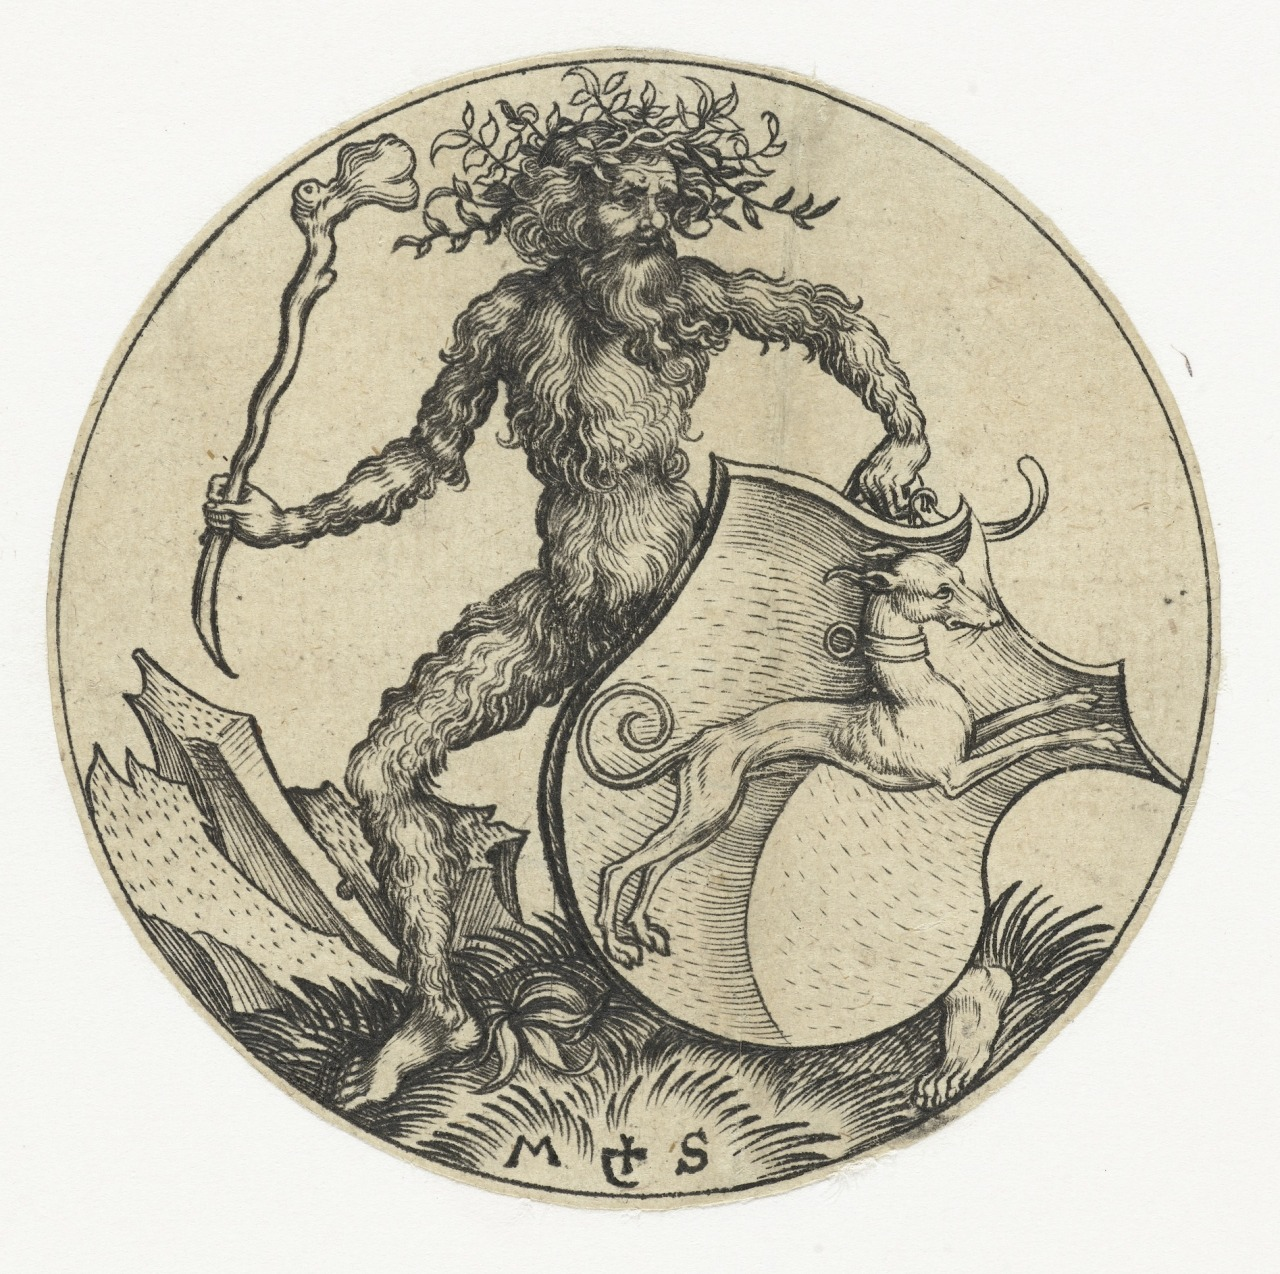 Martin-Schongauer-Coat-of-arms-with-a-Dog-Held-by-a-Woodwose-with-a-Club.